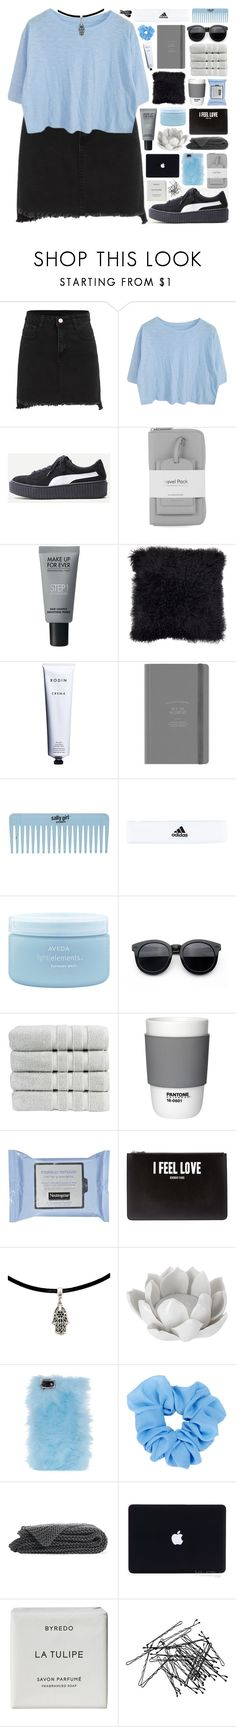 """rapido, brusco, violento"" by untake-n ❤ liked on Polyvore featuring Warehouse, MAKE UP FOR EVER, Rodin, adidas, Aveda, Christy, Pantone, Givenchy, Pavilion Broadway and Skinnydip"